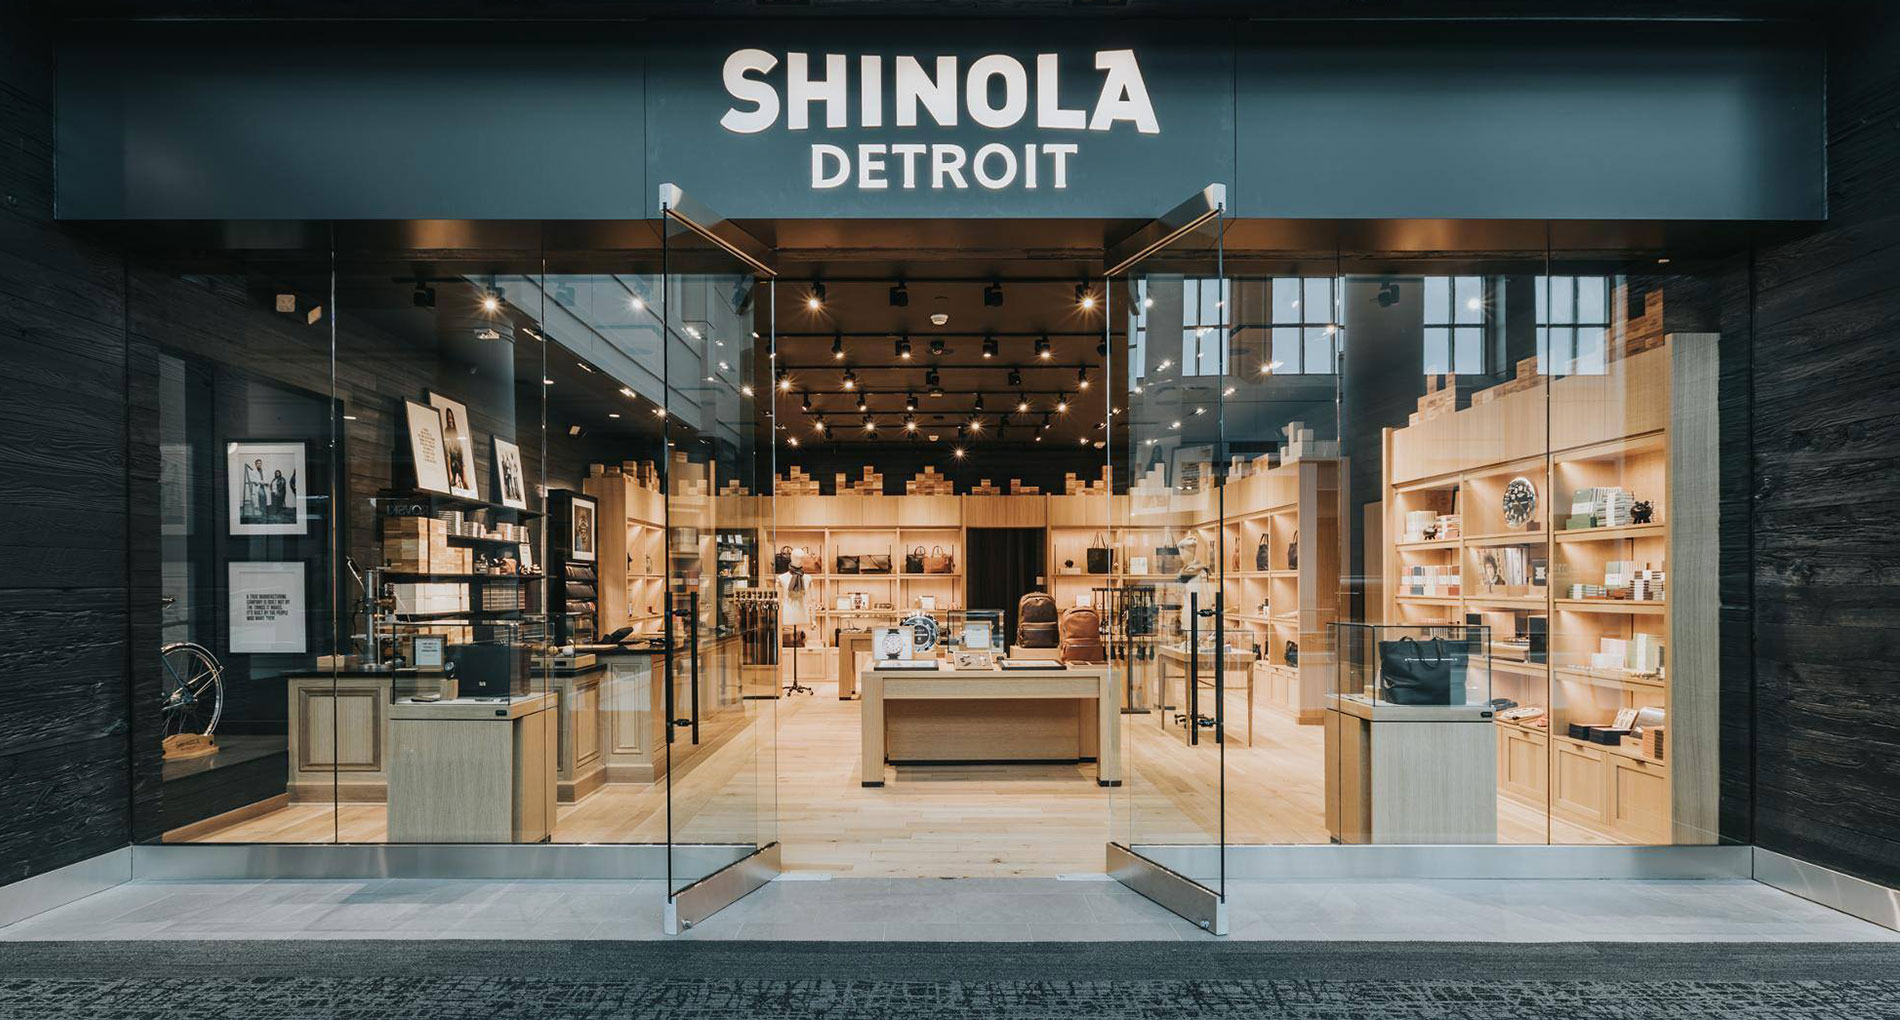 Alumna Helps Develop Products for Shinola